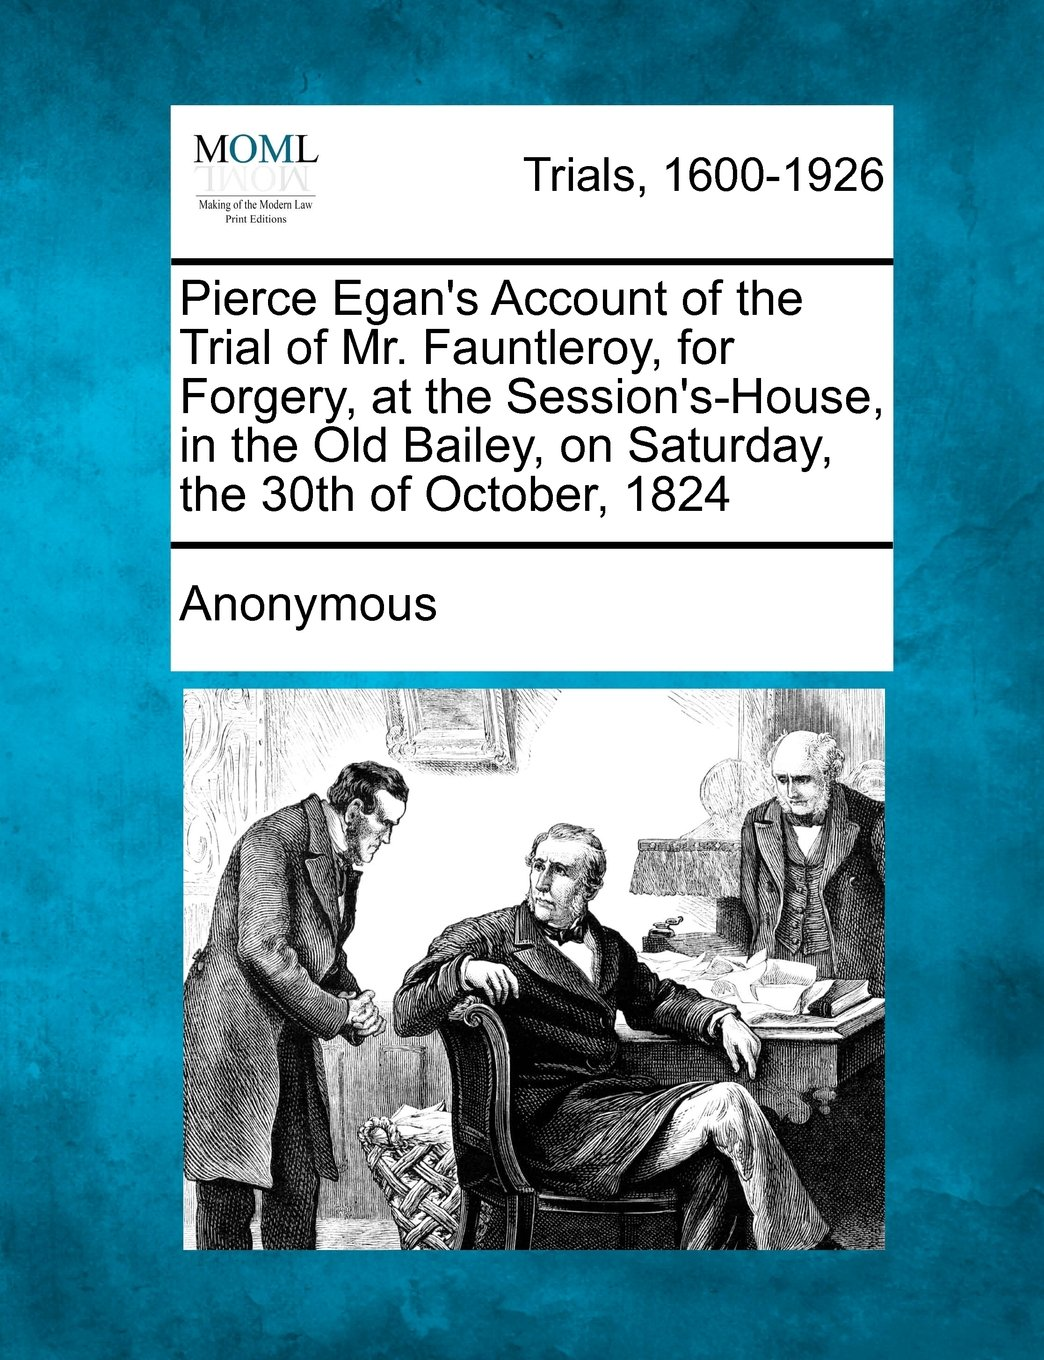 Read Online Pierce Egan's Account of the Trial of Mr. Fauntleroy, for Forgery, at the Session's-House, in the Old Bailey, on Saturday, the 30th of October, 1824 PDF